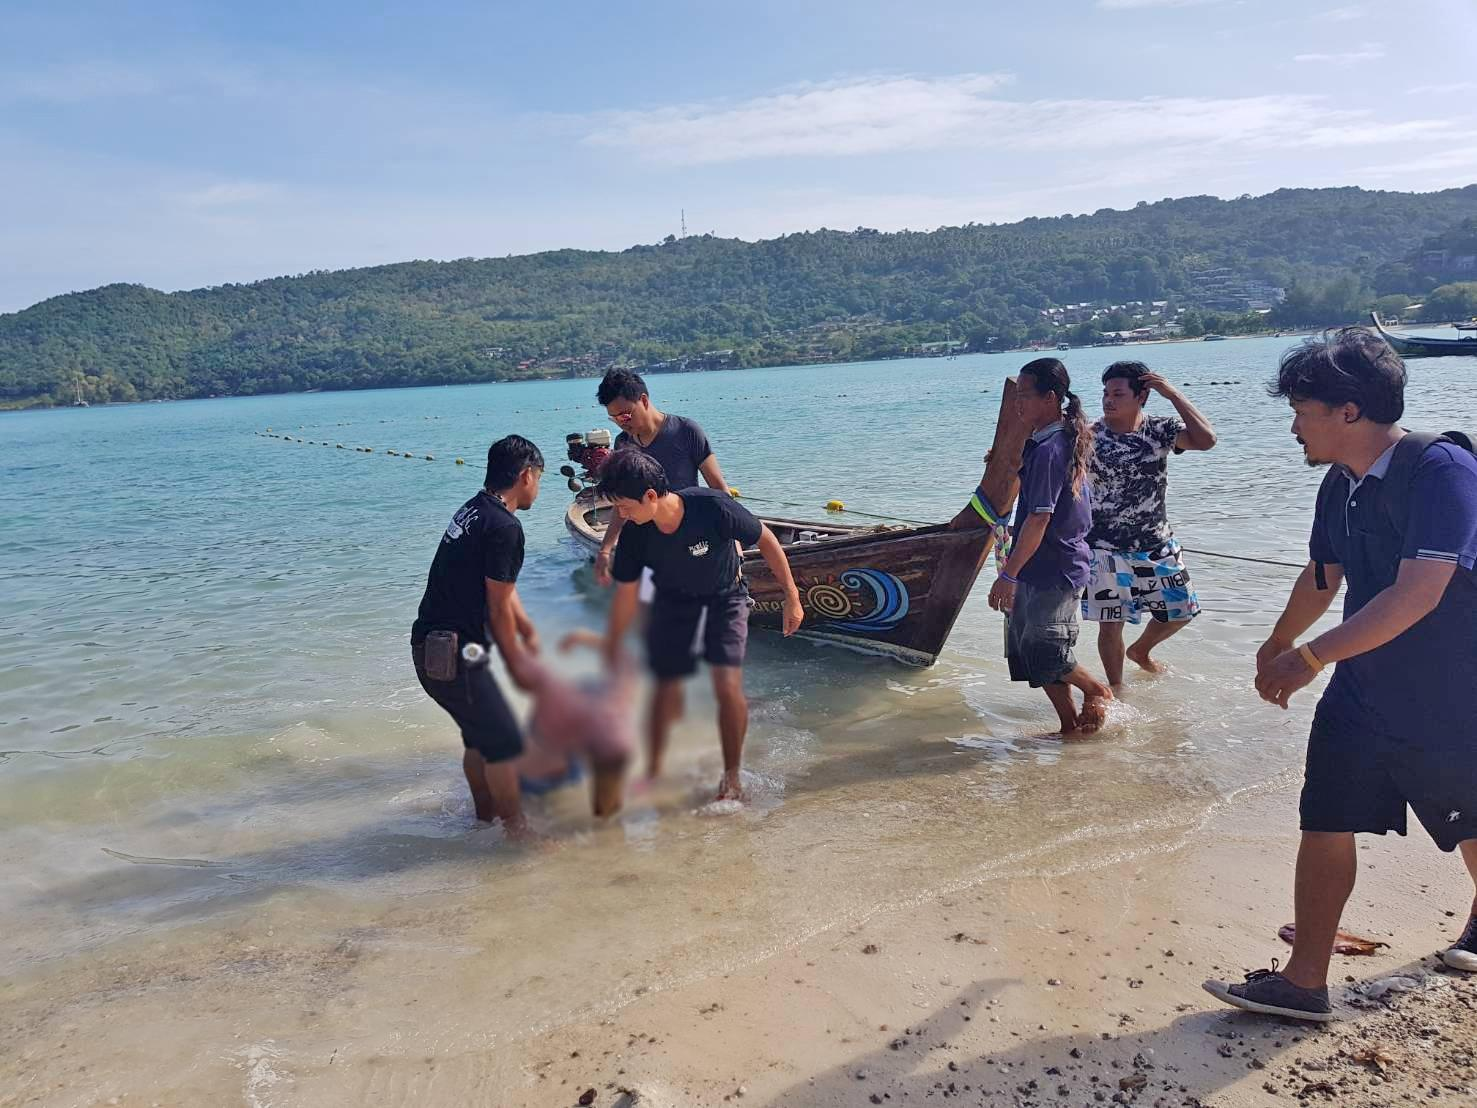 Dead body found floating near Koh Phi Phi | The Thaiger